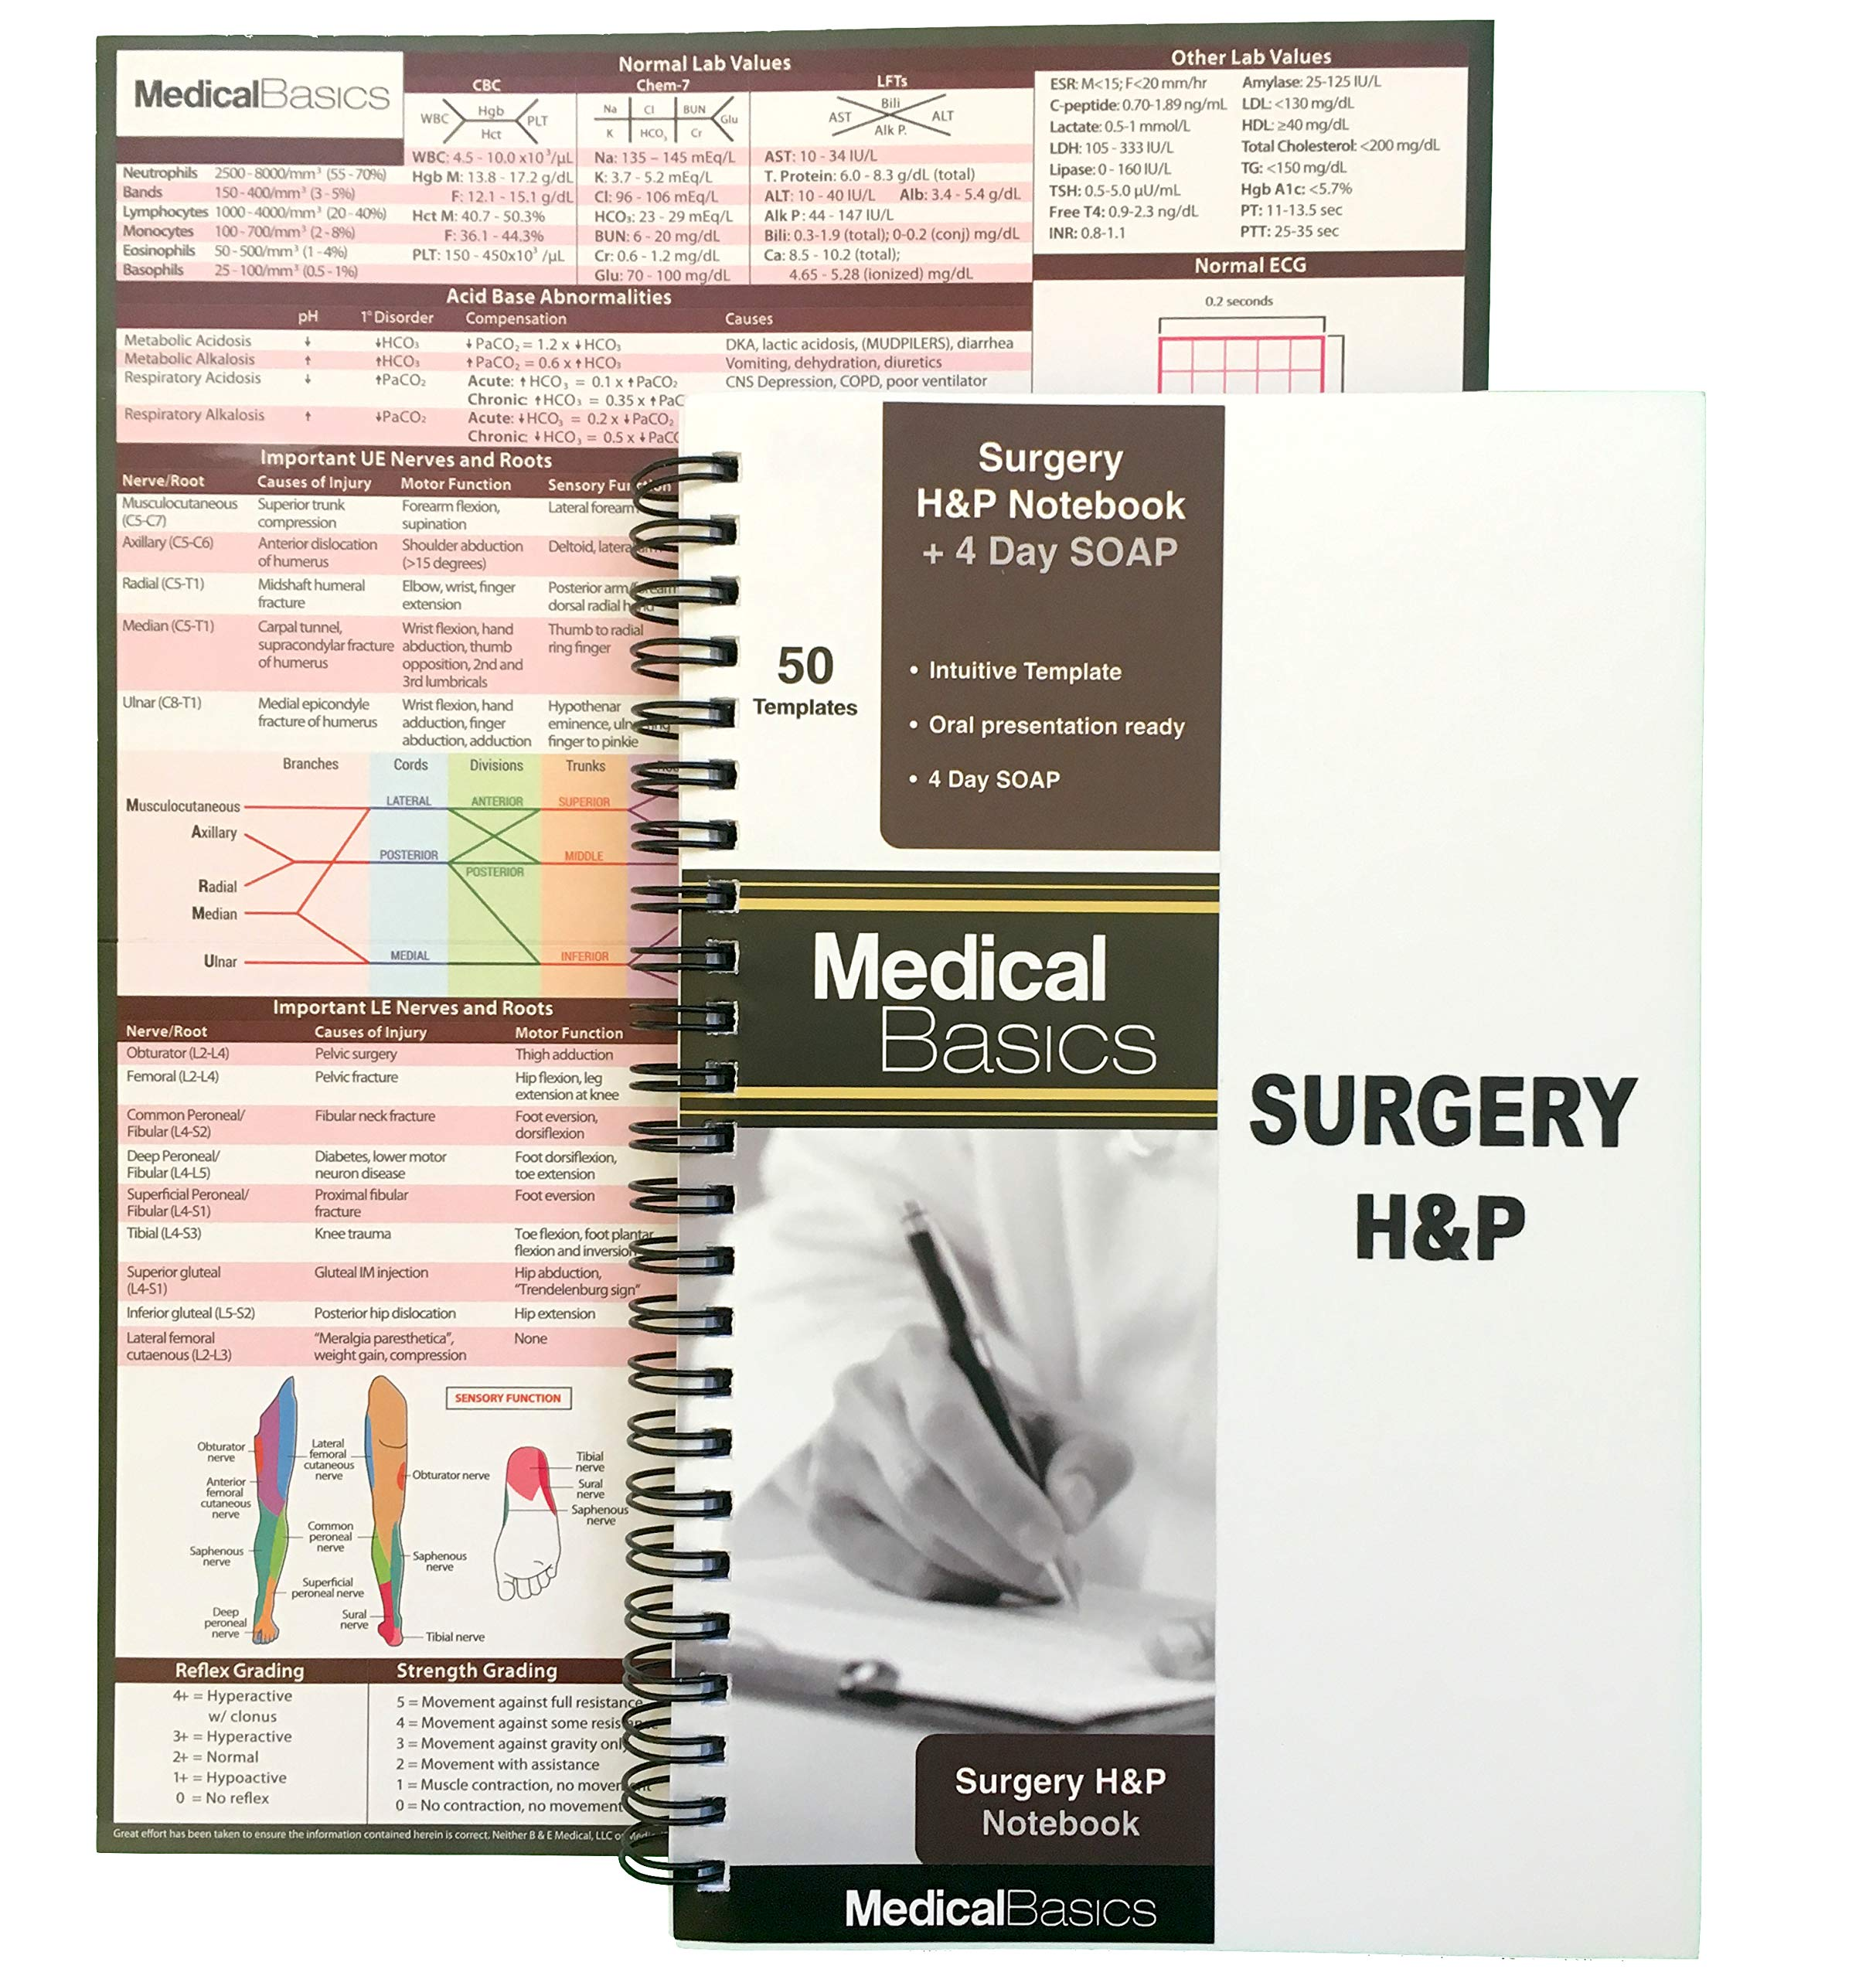 Surgery H&P Notebook with 4 Day SOAP - Medical History and Physical Notebook, 50 Medical templates with Perforations